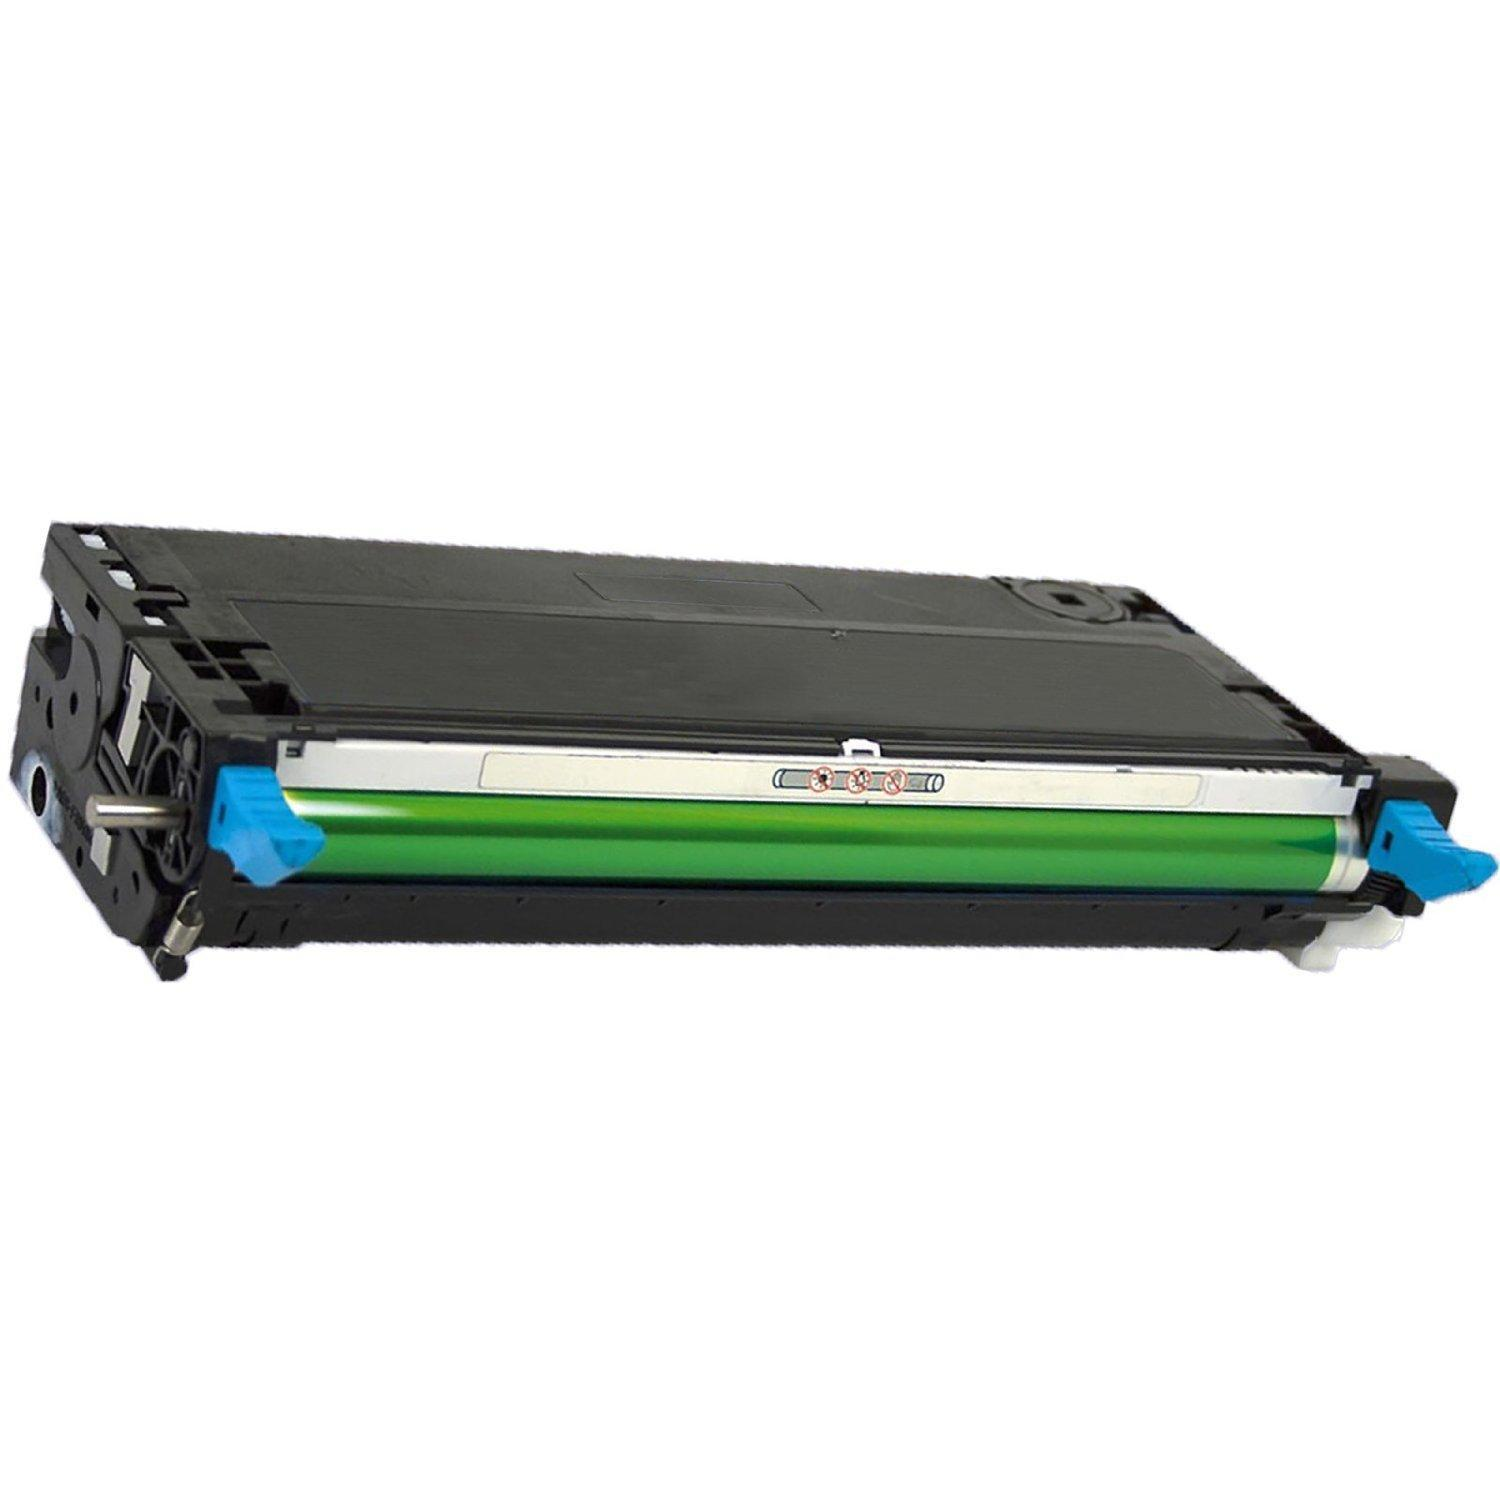 Dell 310-8094 Compatible (Remanufactured) Cyan Toner Cartridge High Yield